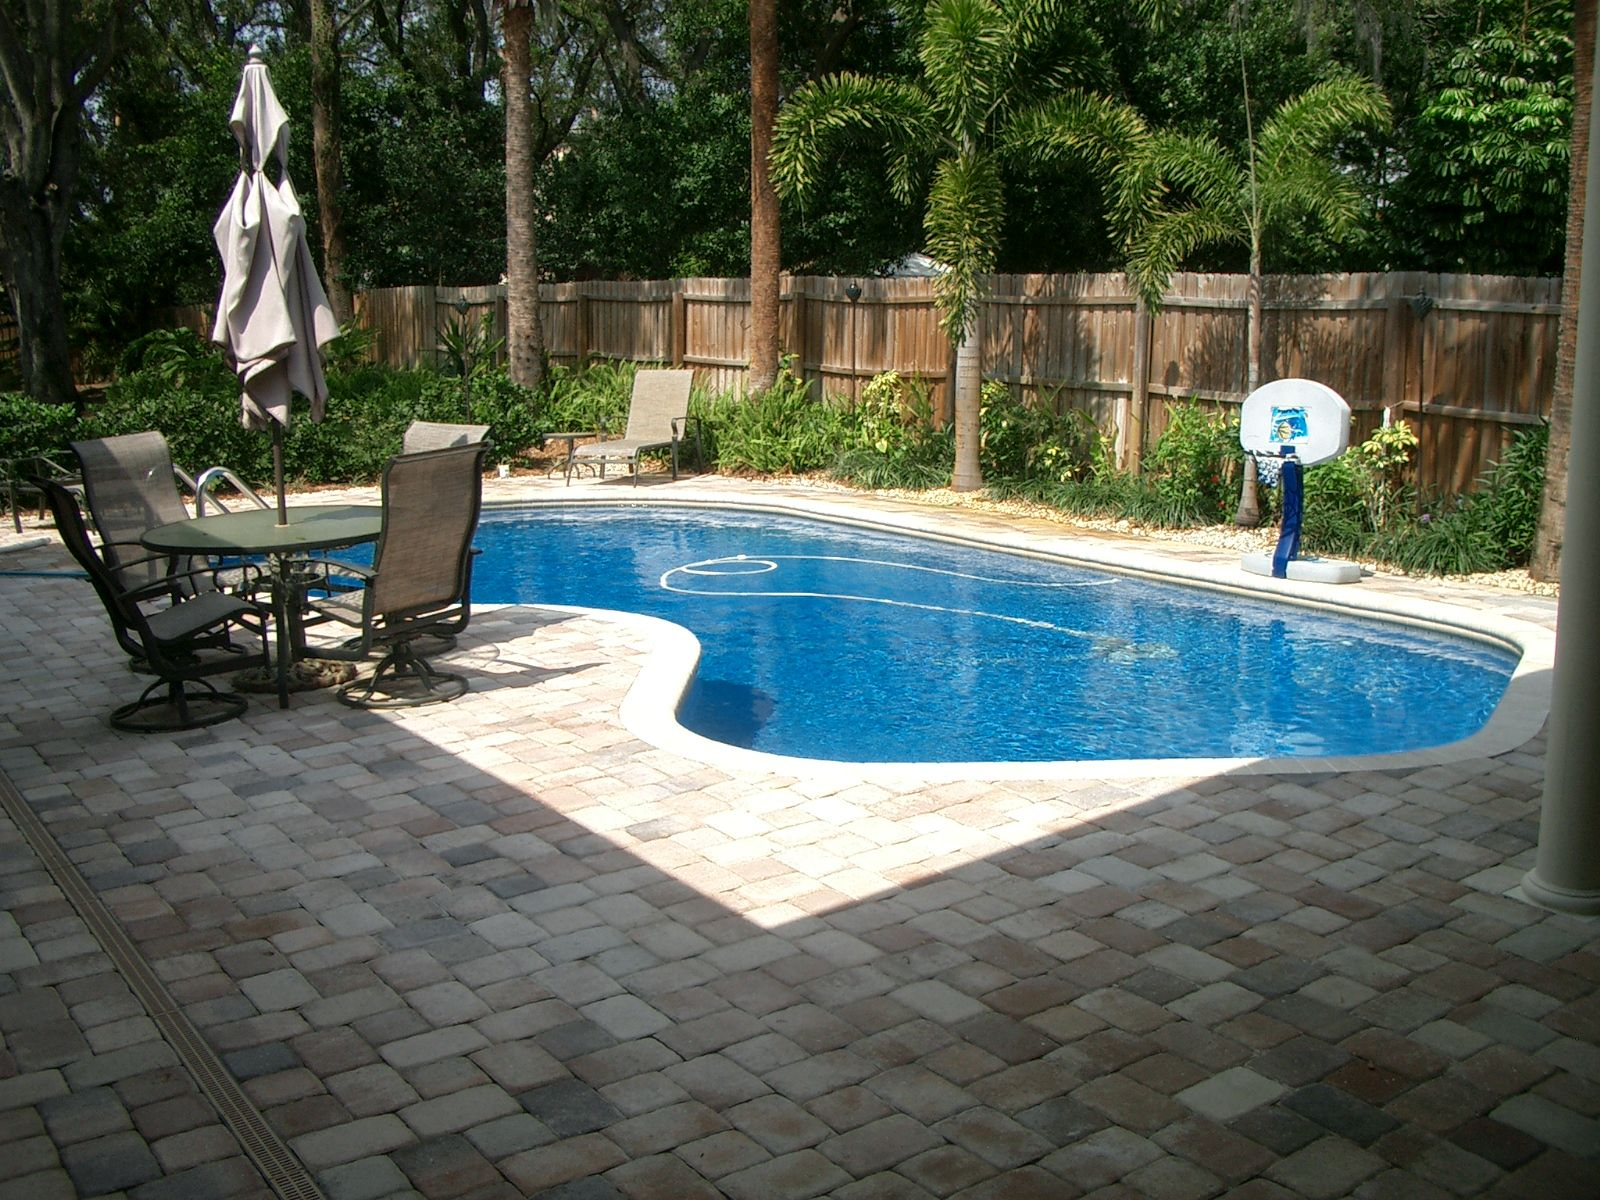 backyard landscaping ideas swimming pool design read more at wwwhomestheticsnet - Backyard Swimming Pool Designs